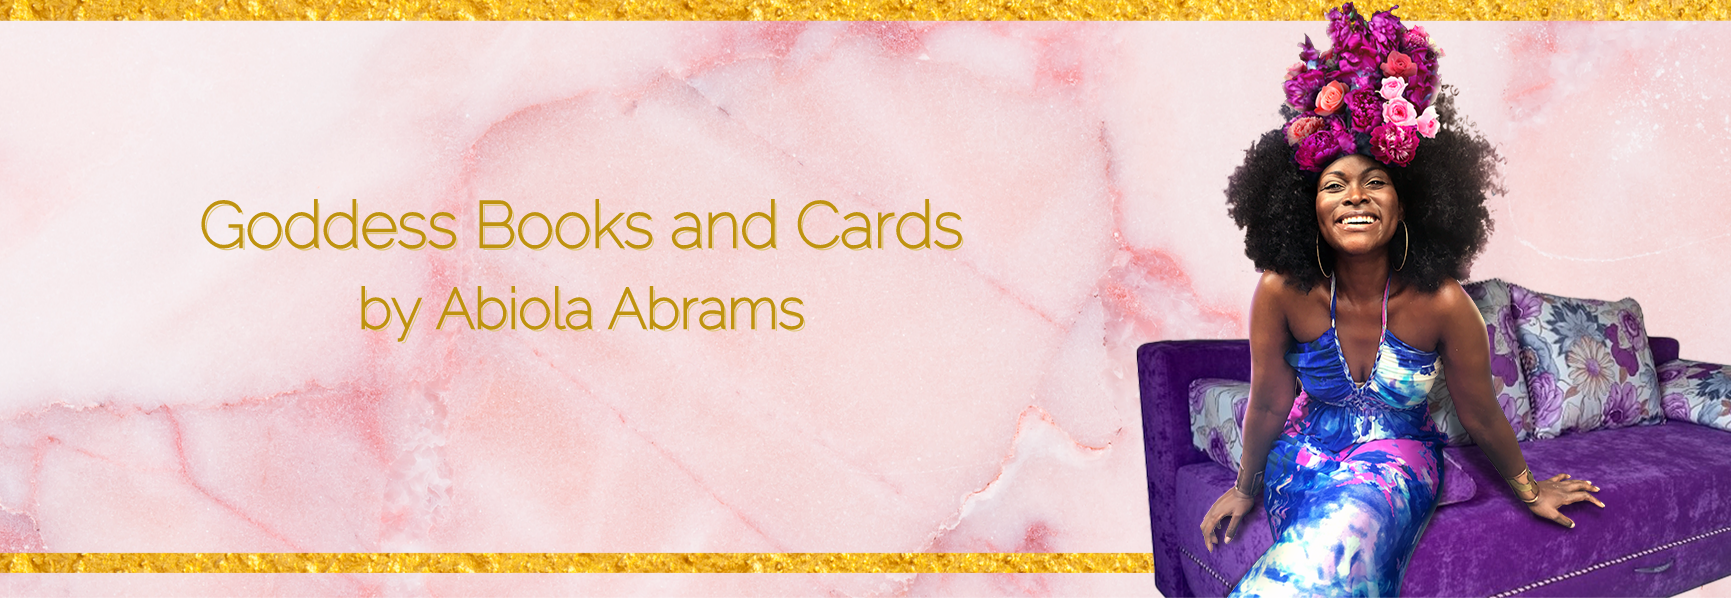 Goddess Books and Cards by Abiola Abrams